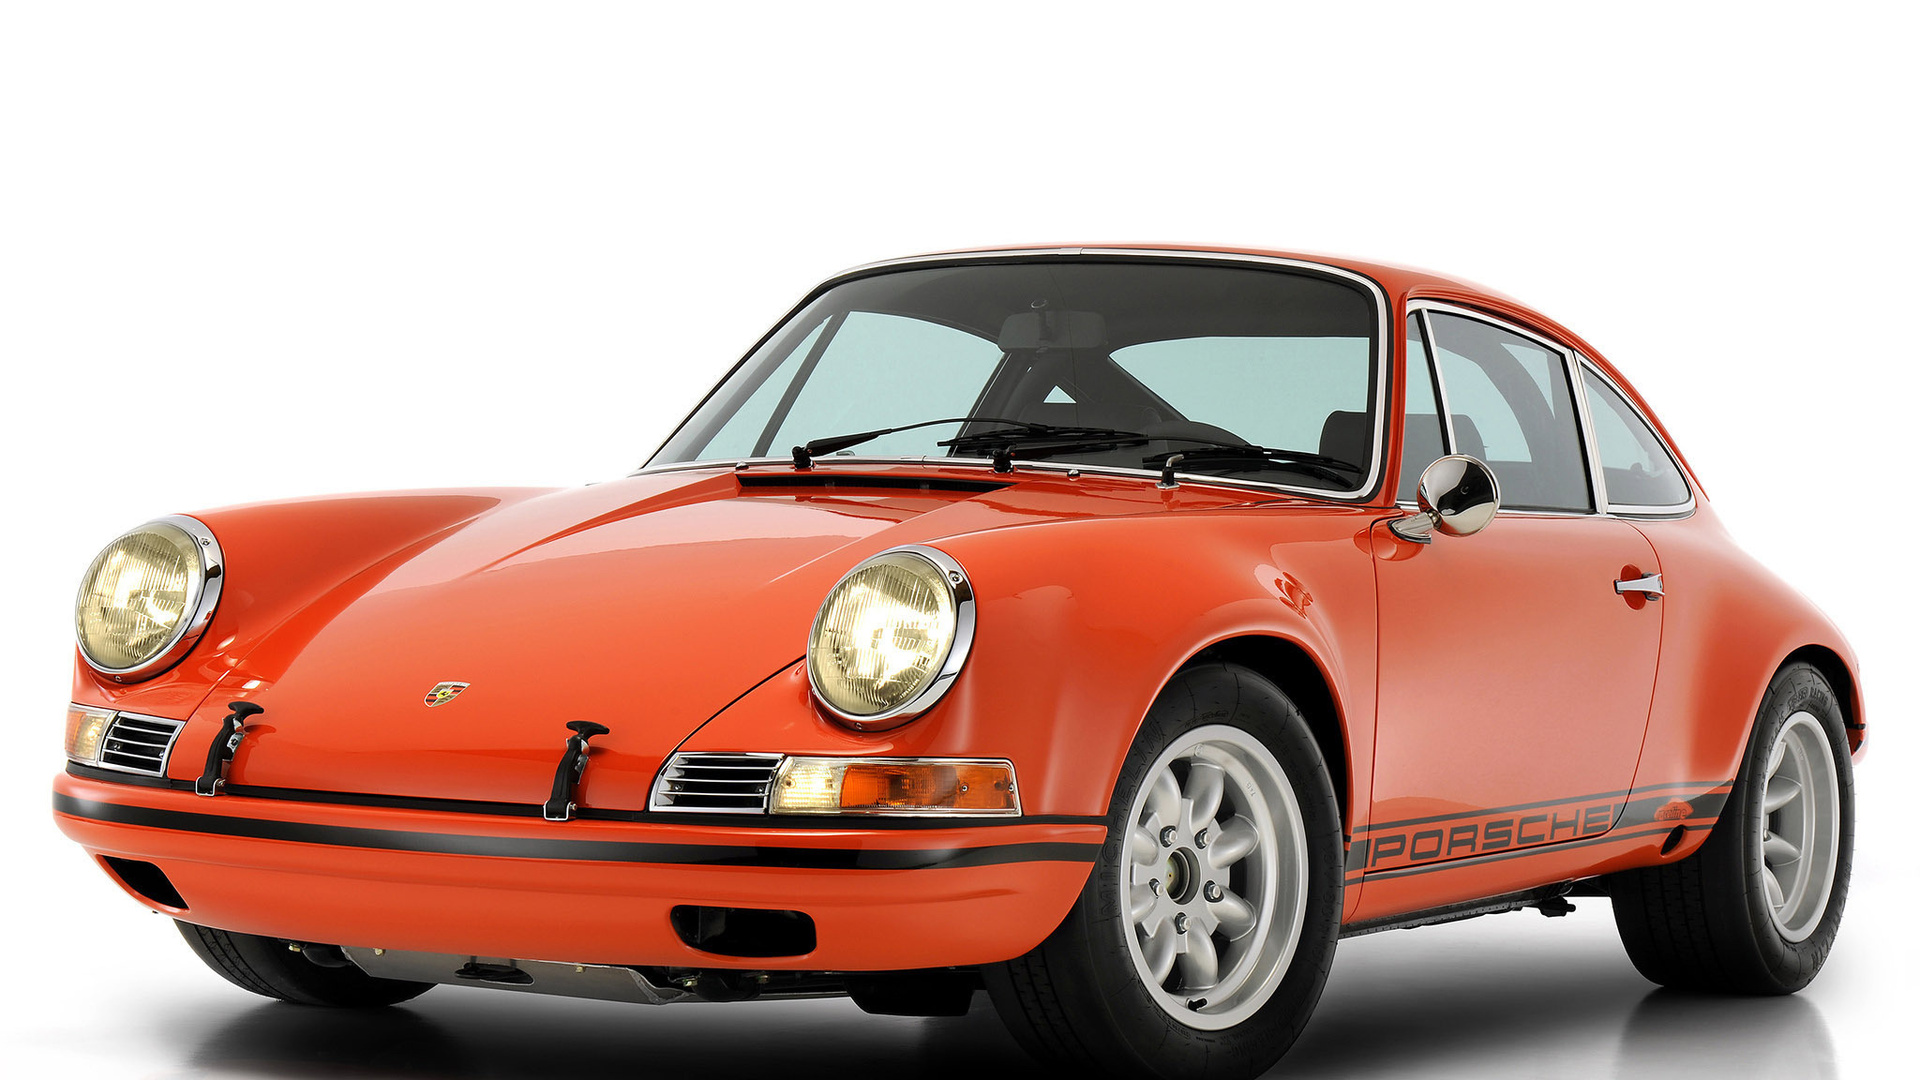 classic porsche wallpaper wallpapersafari. Black Bedroom Furniture Sets. Home Design Ideas